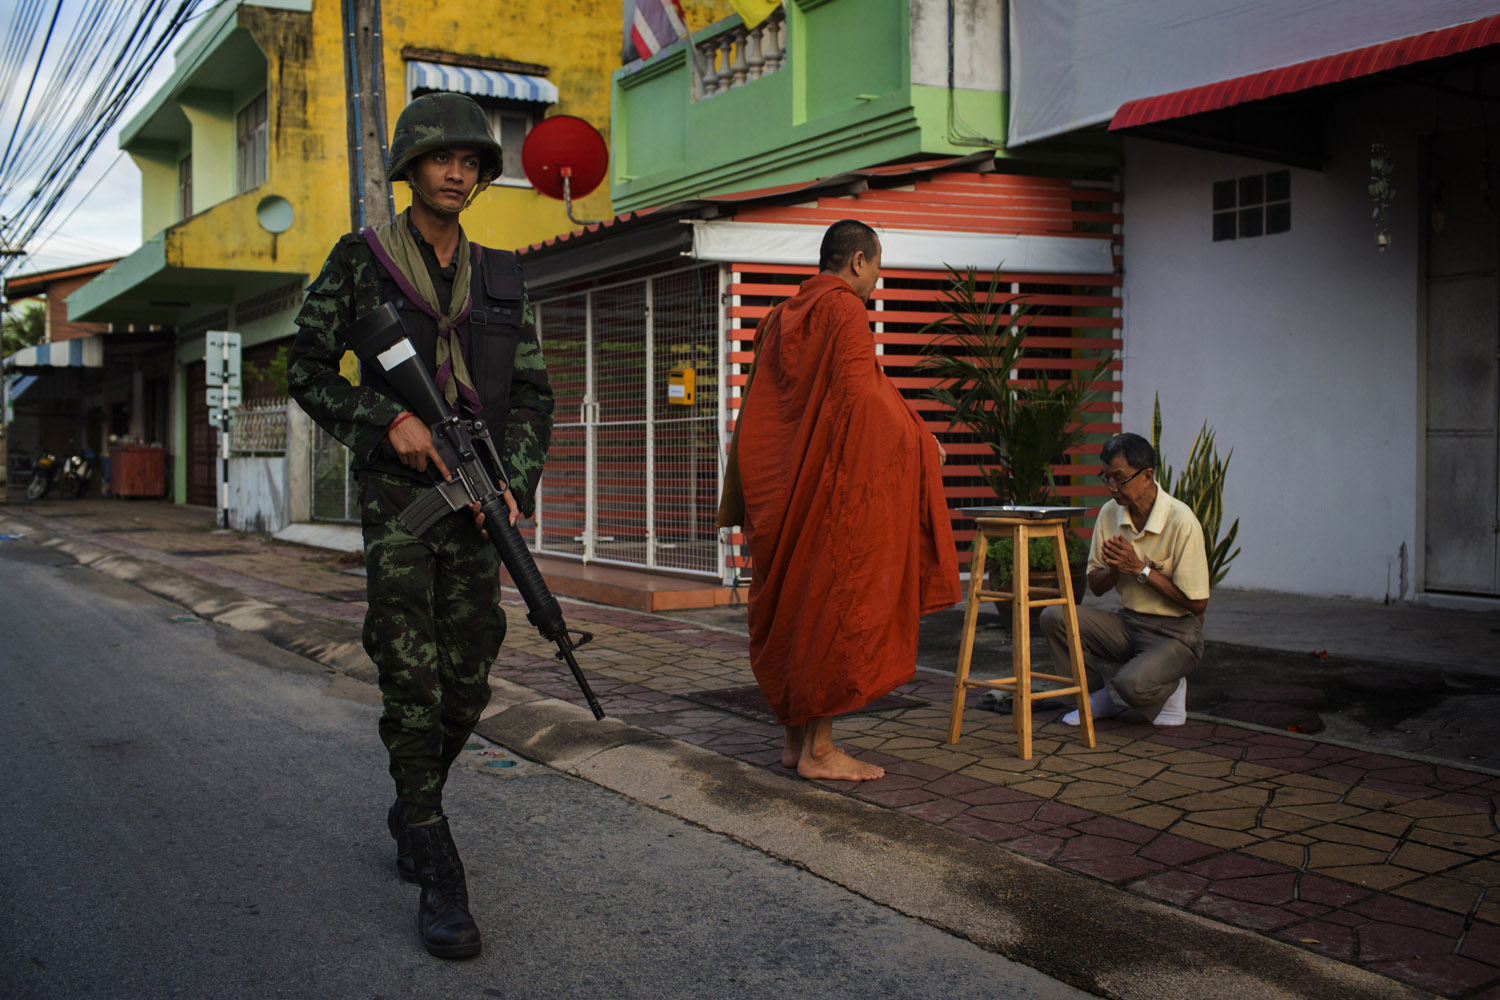 A Thai Army soldier provides security as monks from the Nopawong Saram Temple collect alms on their morning rounds in Pattani, Southern Thailand.